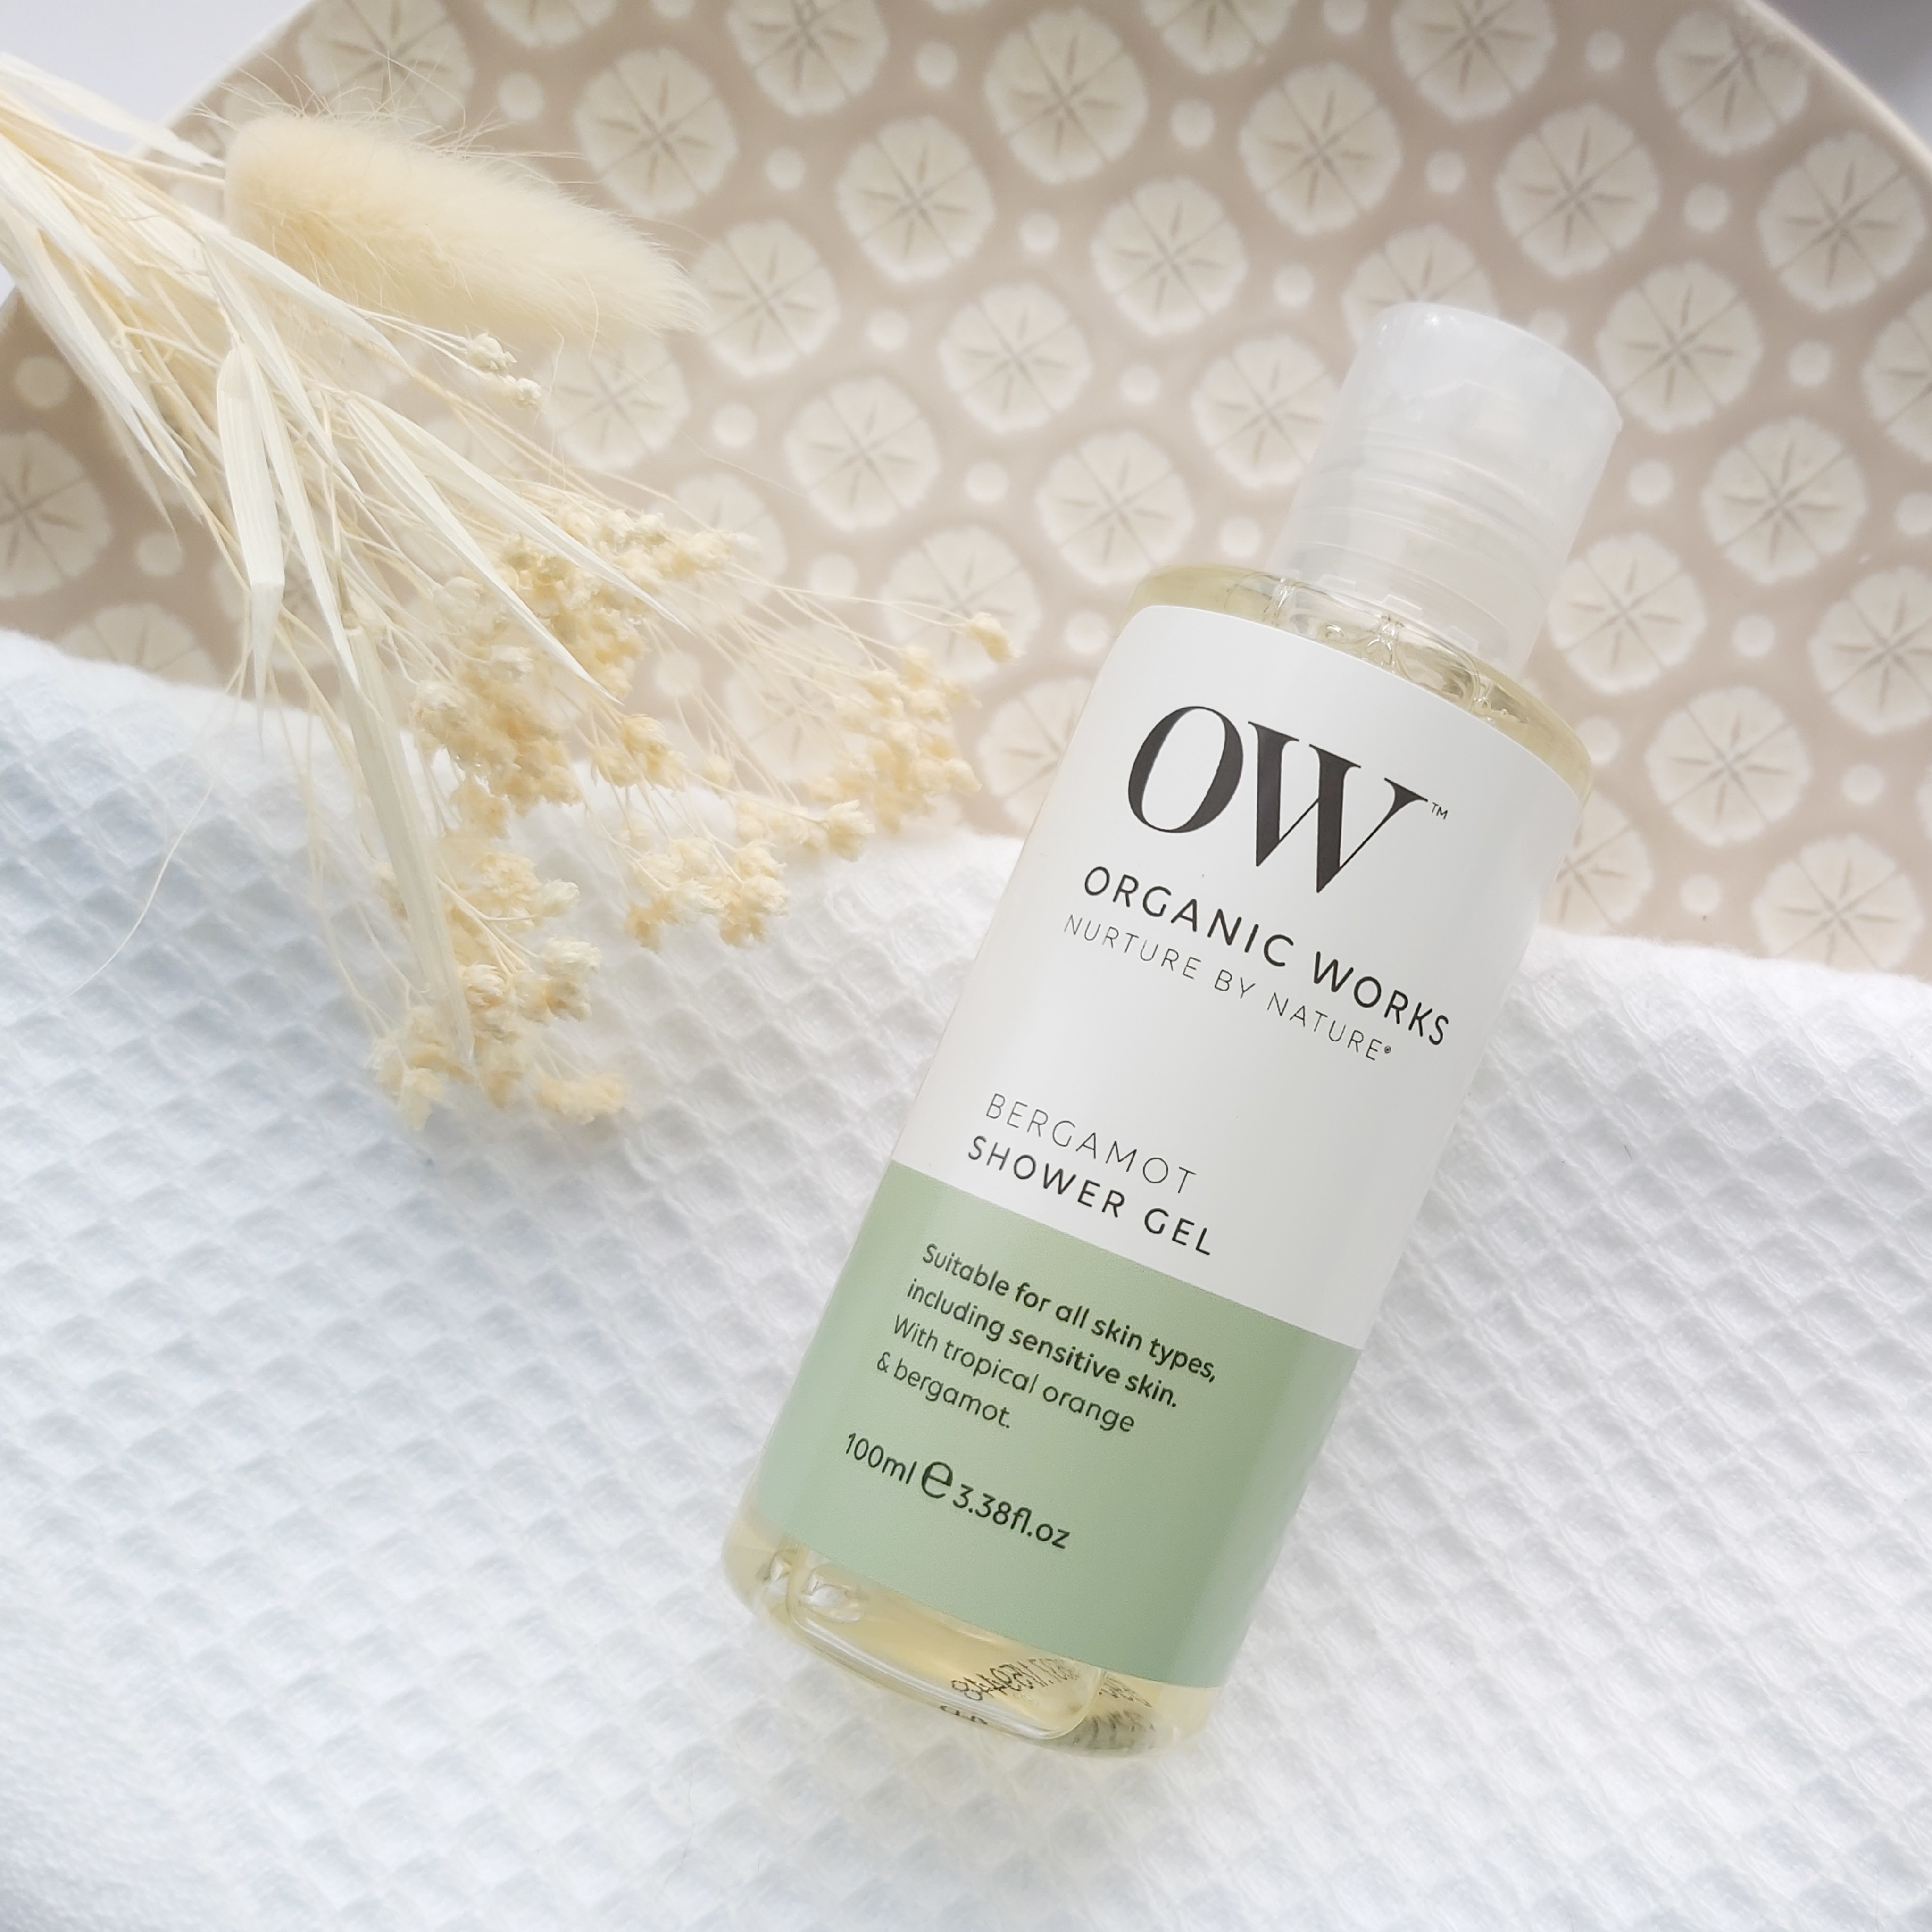 Organic Works bergamot shower gel featured in The Natural Beauty Box May 2021 on a patterned plate, waffle white towel and natural foliage - Review by Beauty Folio